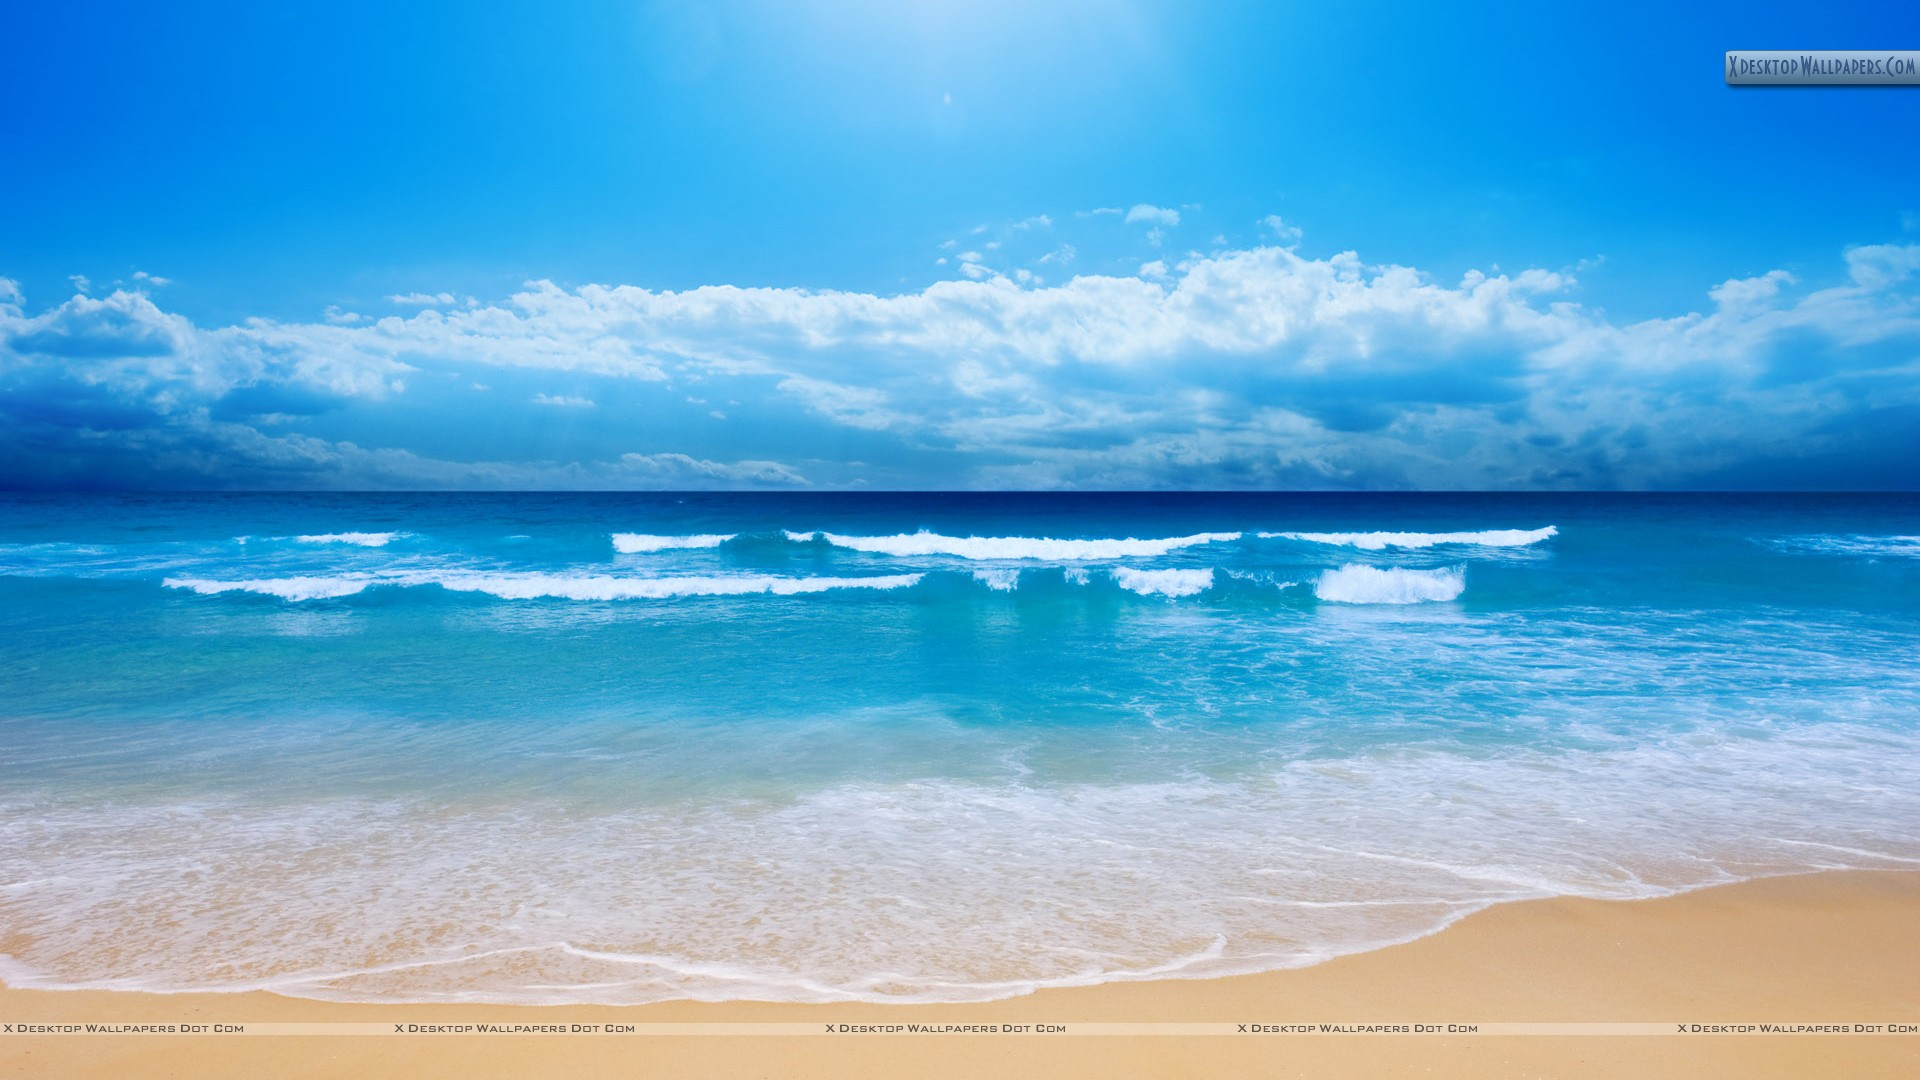 Cool Blue Sea Shore Scene And Waves Wallpaper 1920x1080